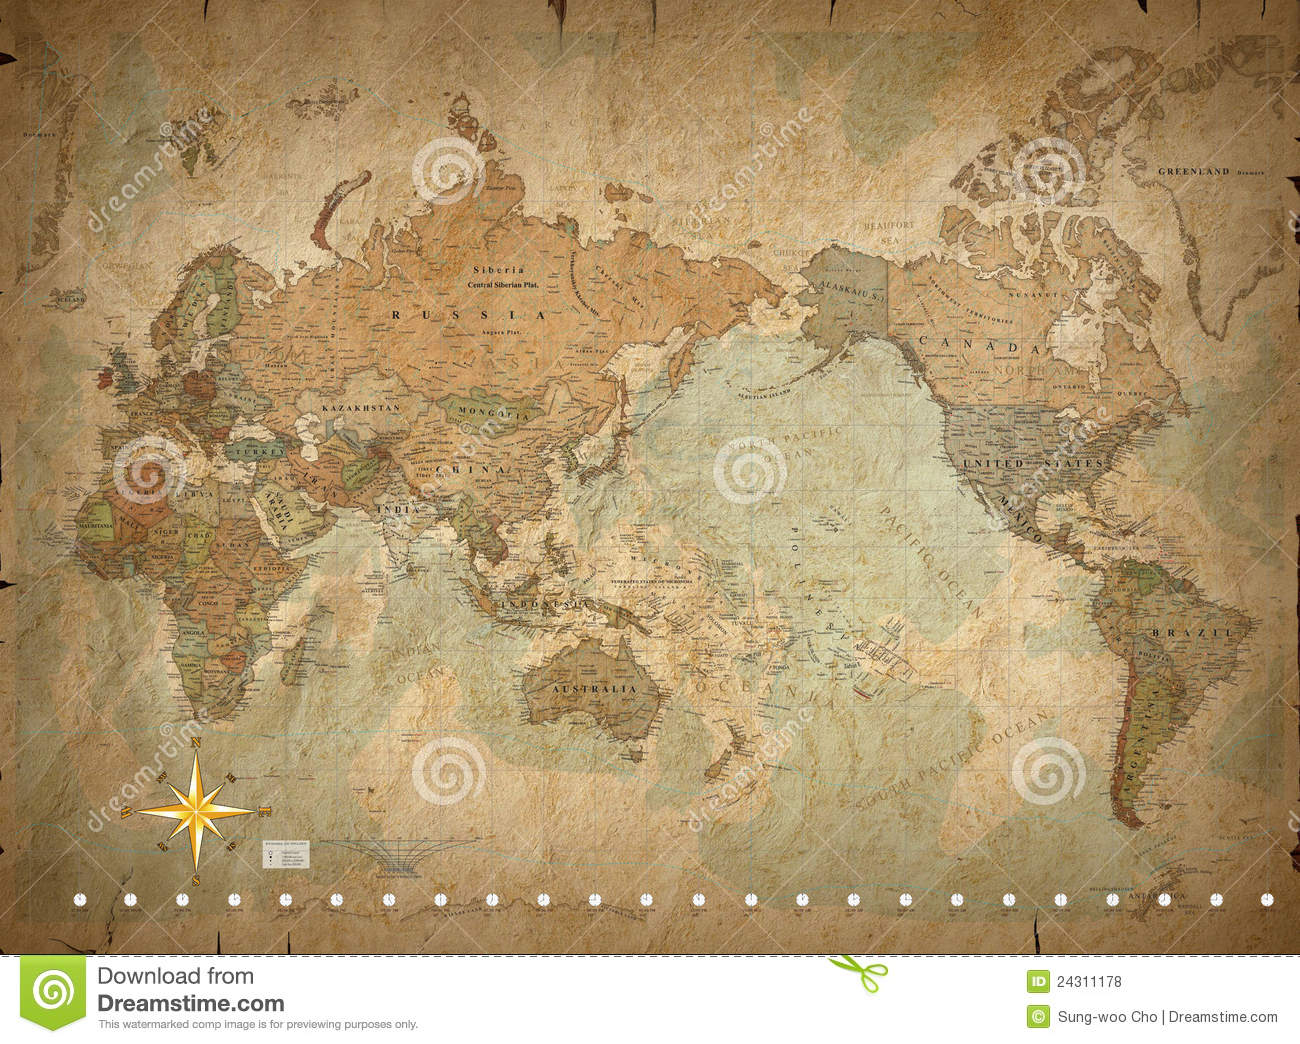 Antique world map stock photo image of global background 24311178 antique world map gumiabroncs